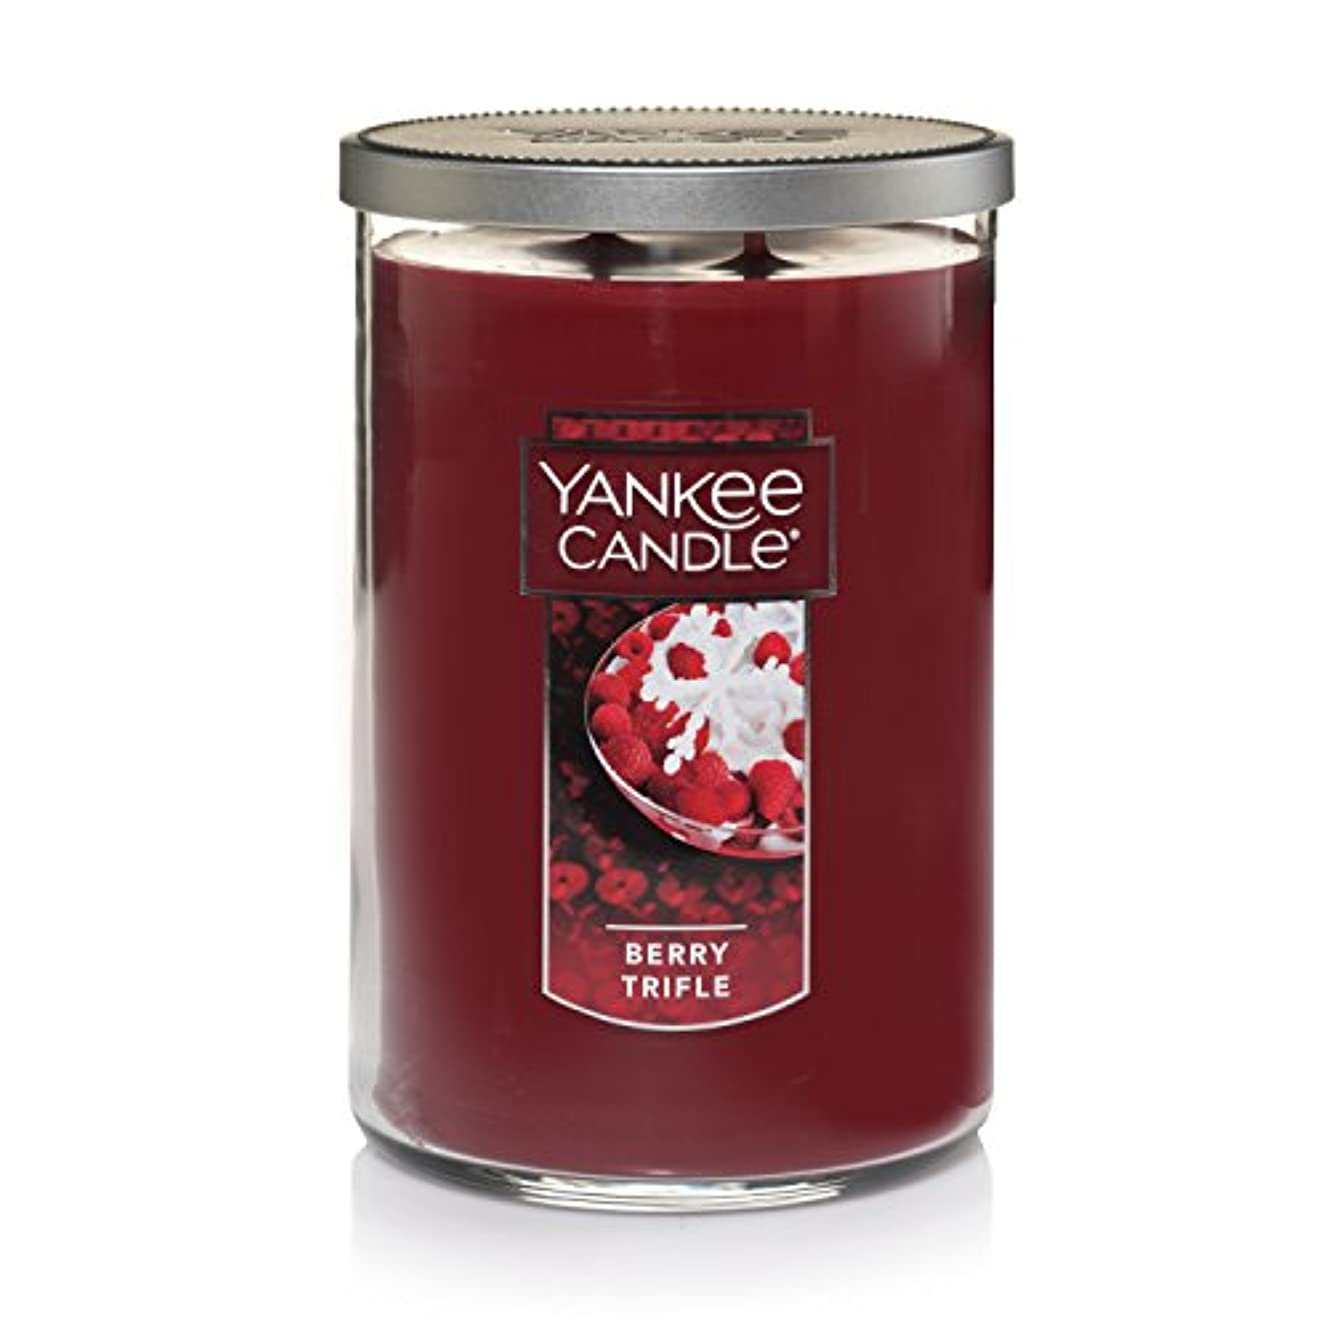 ナイロン書く財産Yankee Candle Large Jar Candle Large 2-Wick Tumbler Candle レッド 1342528